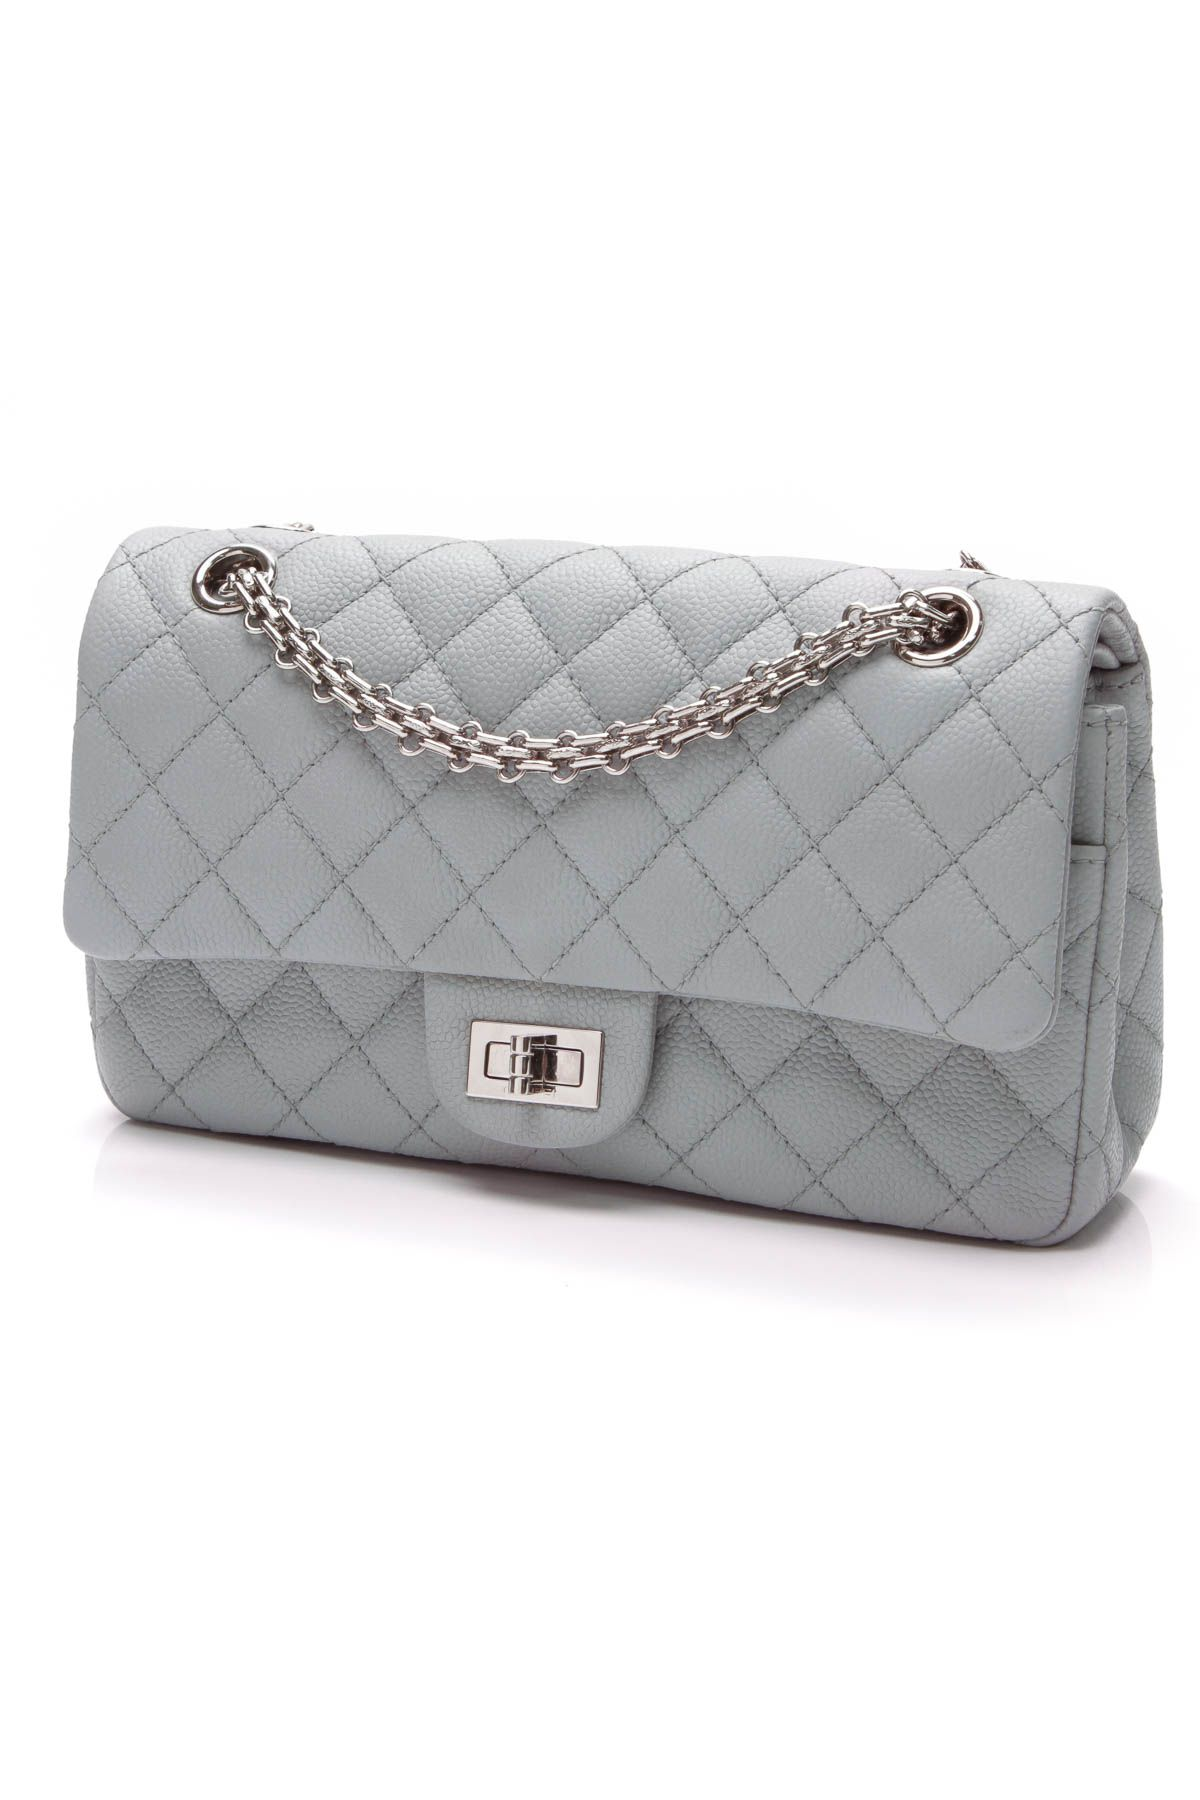 bce0811b1c81 Chanel 2.55 Reissue Double Flap Bag - 225 Blue Caviar | Crazy for ...